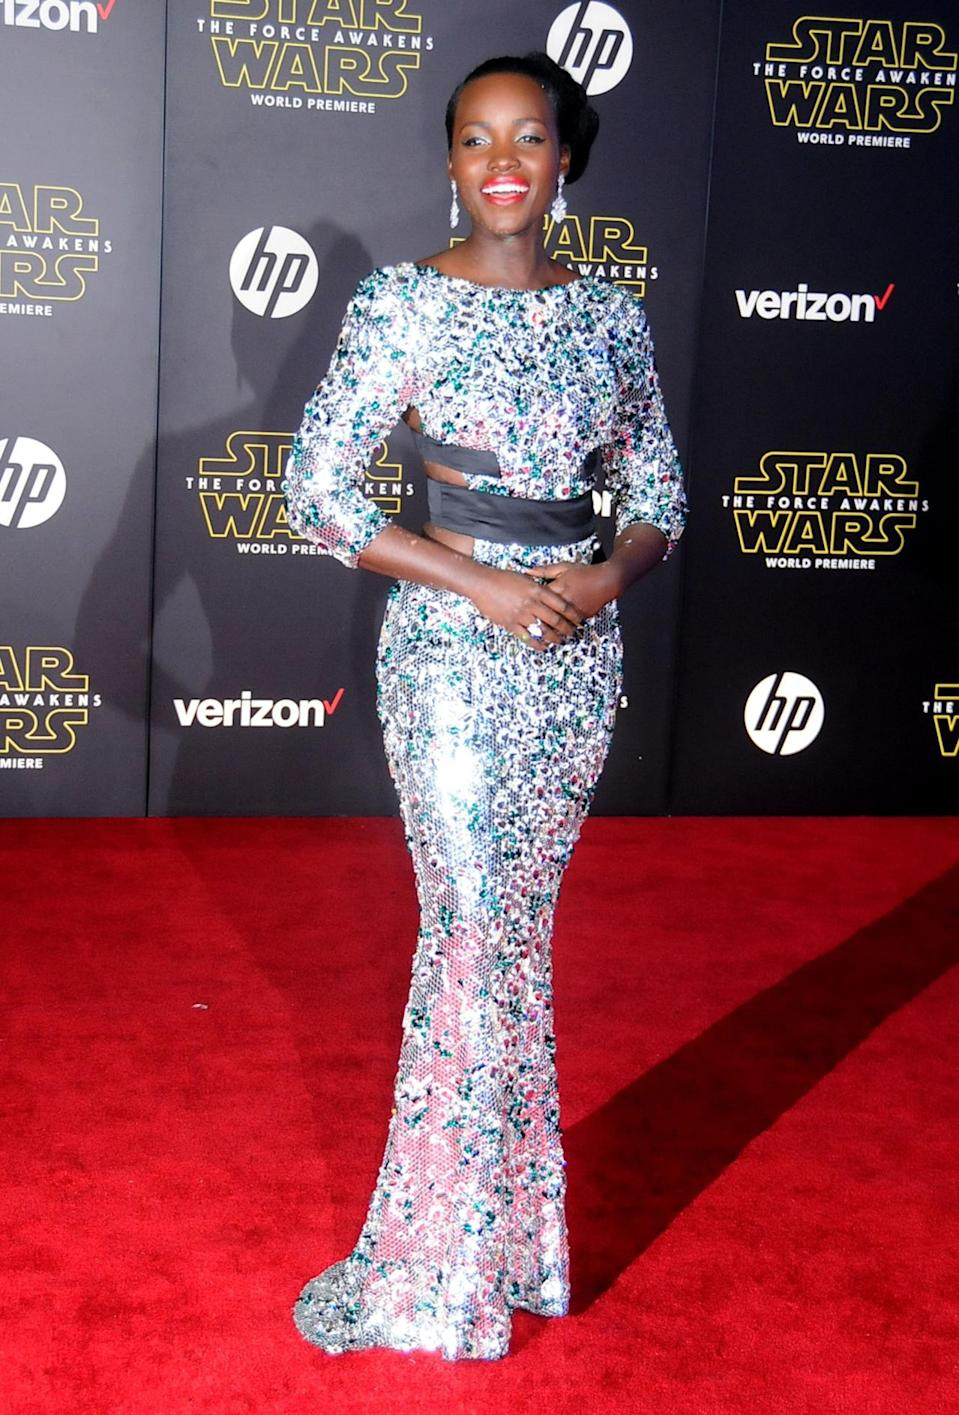 <p>Nyong'o continued to shine, wearing a glittering Alexandre Vauthier gown to the LA premiere of her new film, <i>Star Wars: The Force Awakens</i>. Black straps around the middle cut-outs kept the look from feeling too sweet, while her bright lip and statement earrings turned the whole thing festive.</p><p><i>Photo: Getty Images</i></p>